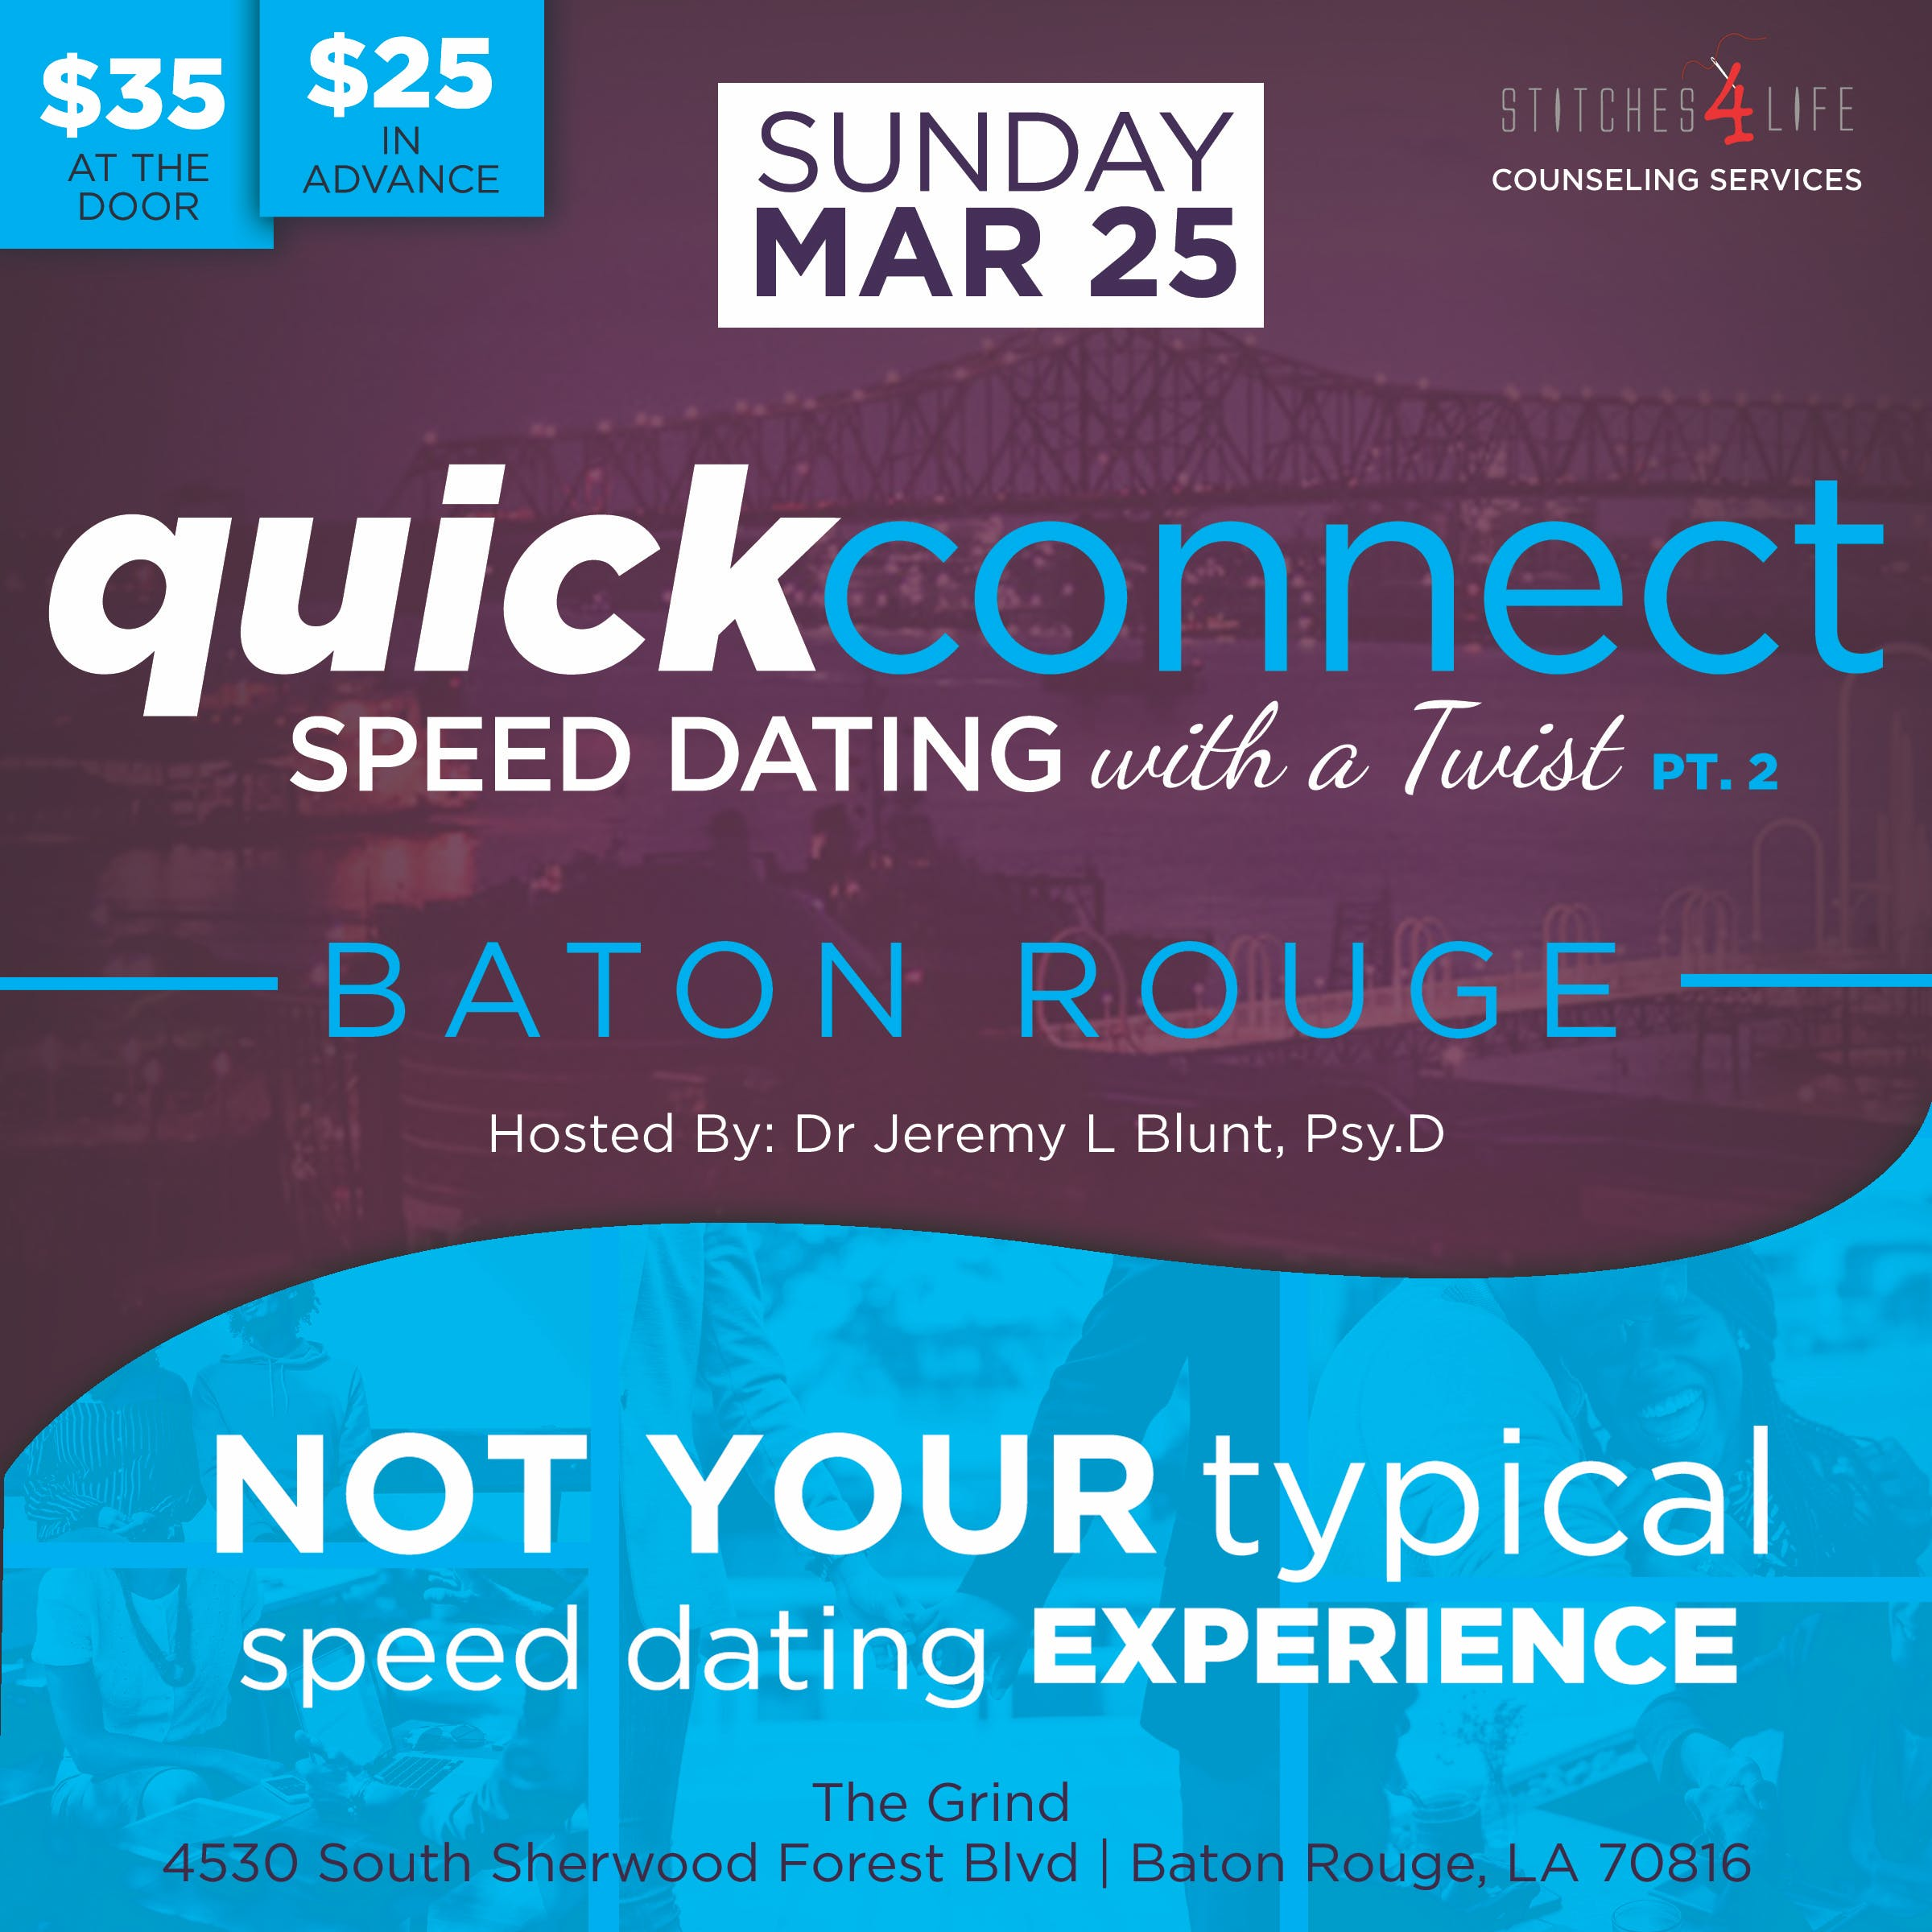 Speed dating in baton rouge. Speed dating in baton rouge.